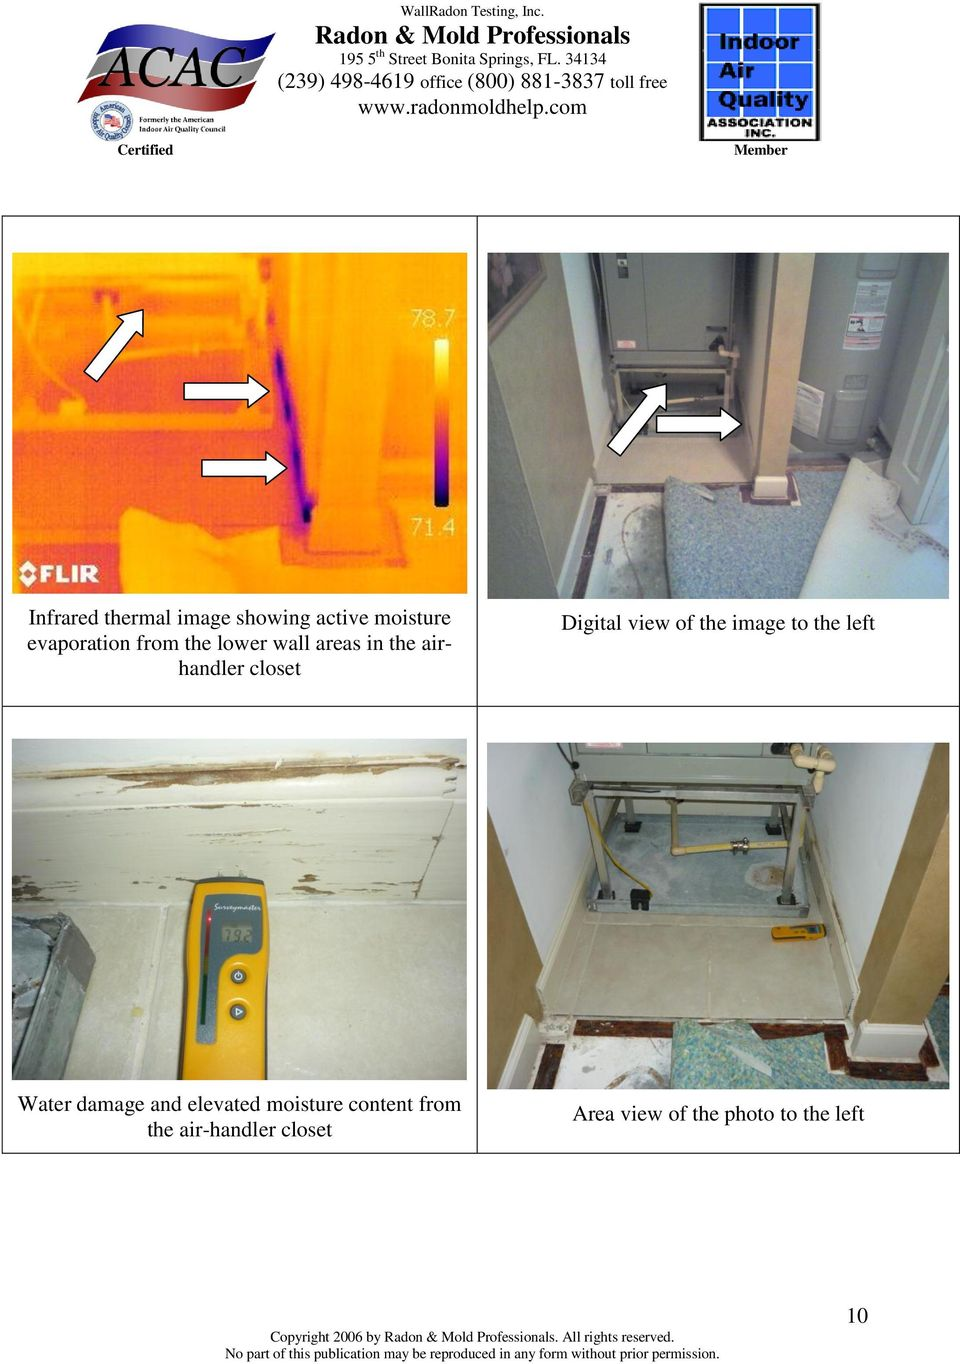 Water damage and elevated moisture content from the air-handler closet